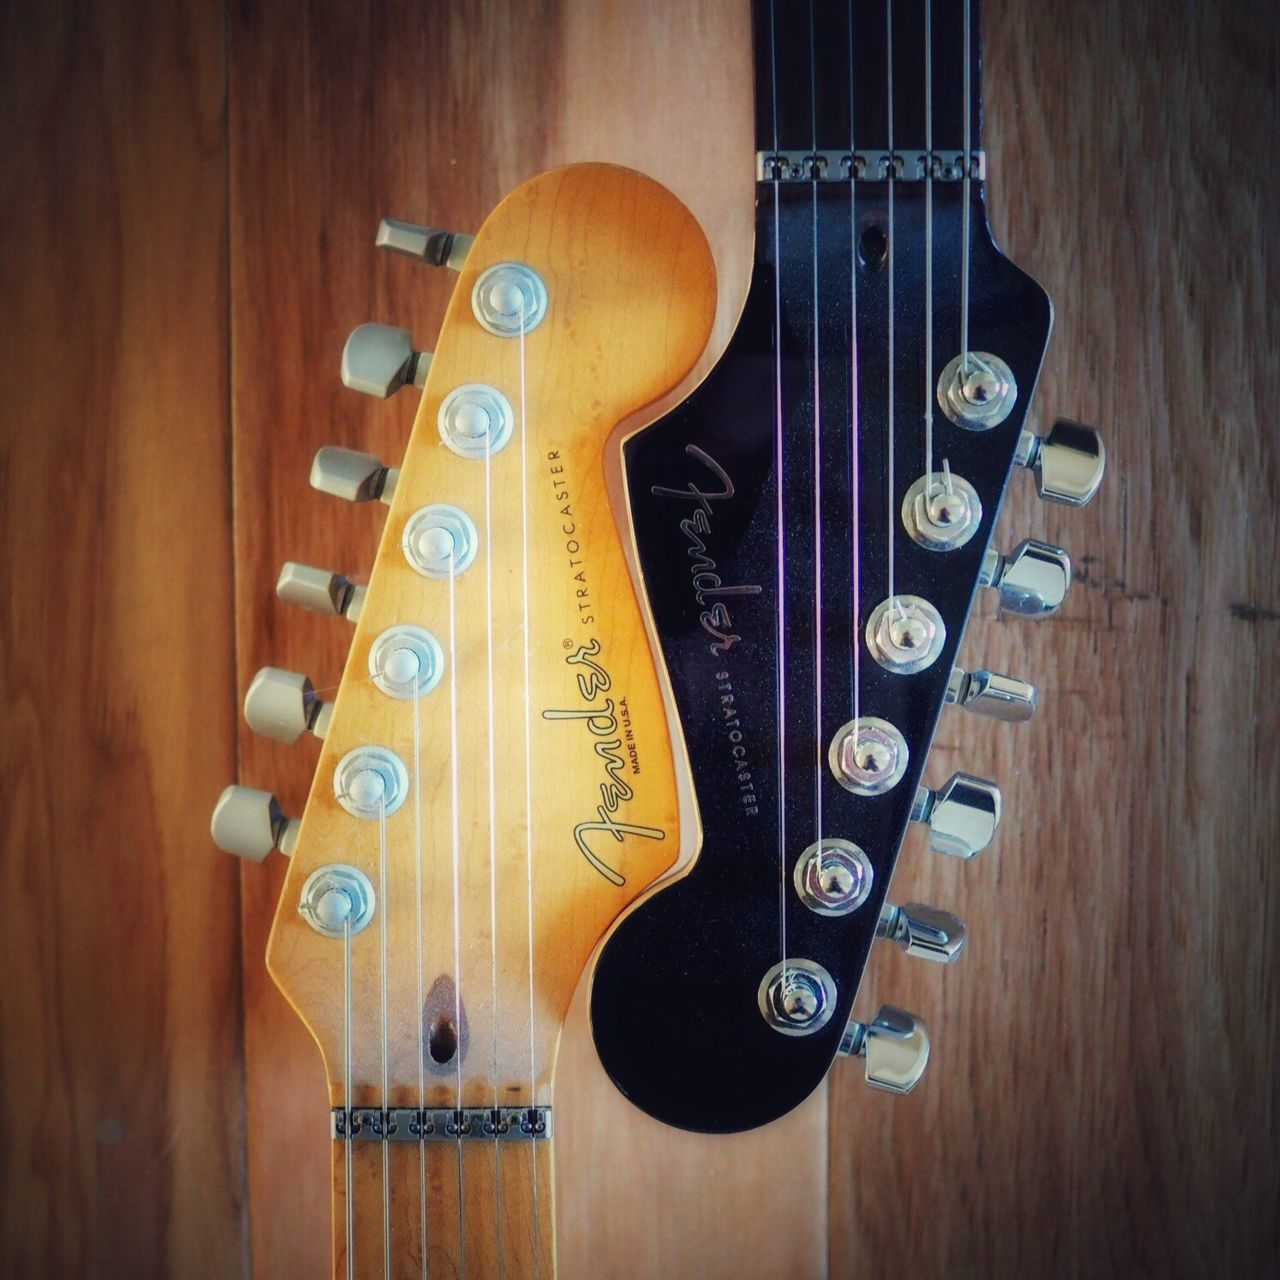 music, musical instrument, musical instrument string, wood - material, arts culture and entertainment, musical equipment, acoustic guitar, indoors, guitar, string instrument, no people, woodwind instrument, fretboard, bass instrument, double bass, electric guitar, close-up, classical music, day